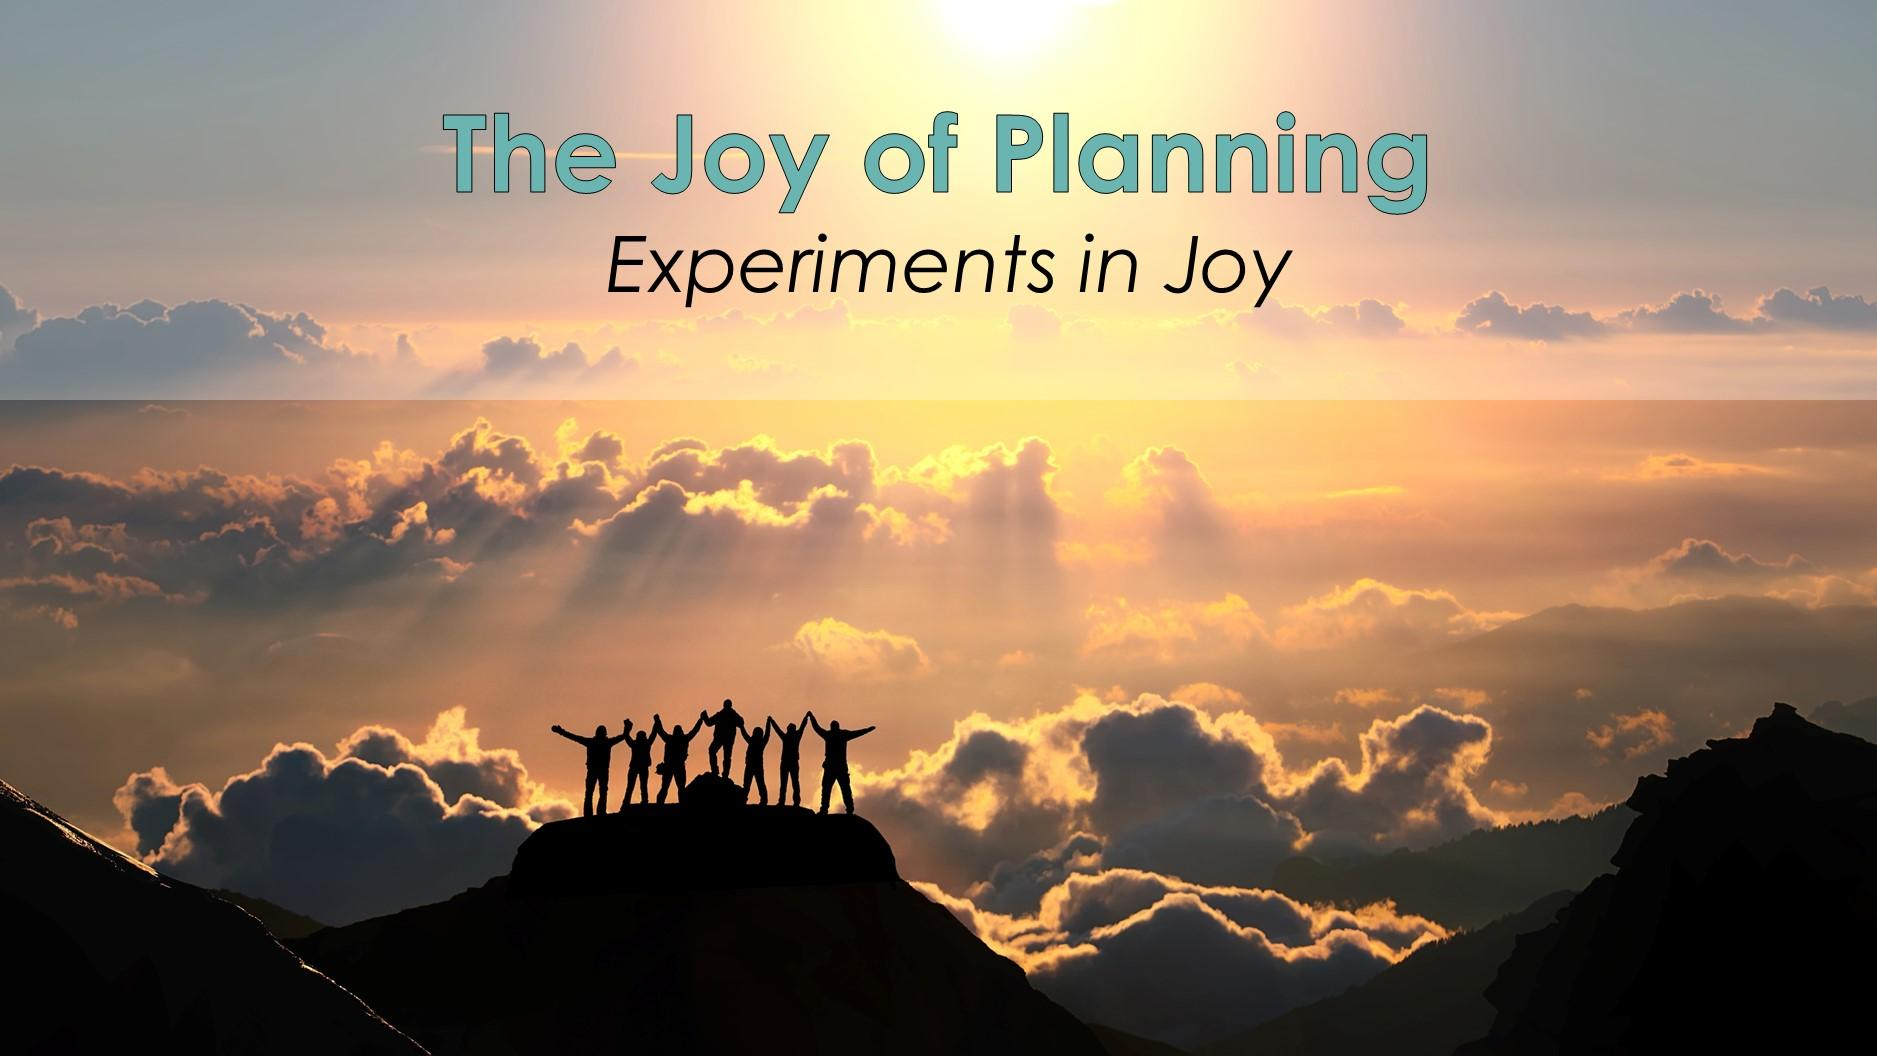 The Joy of Planning Workshop